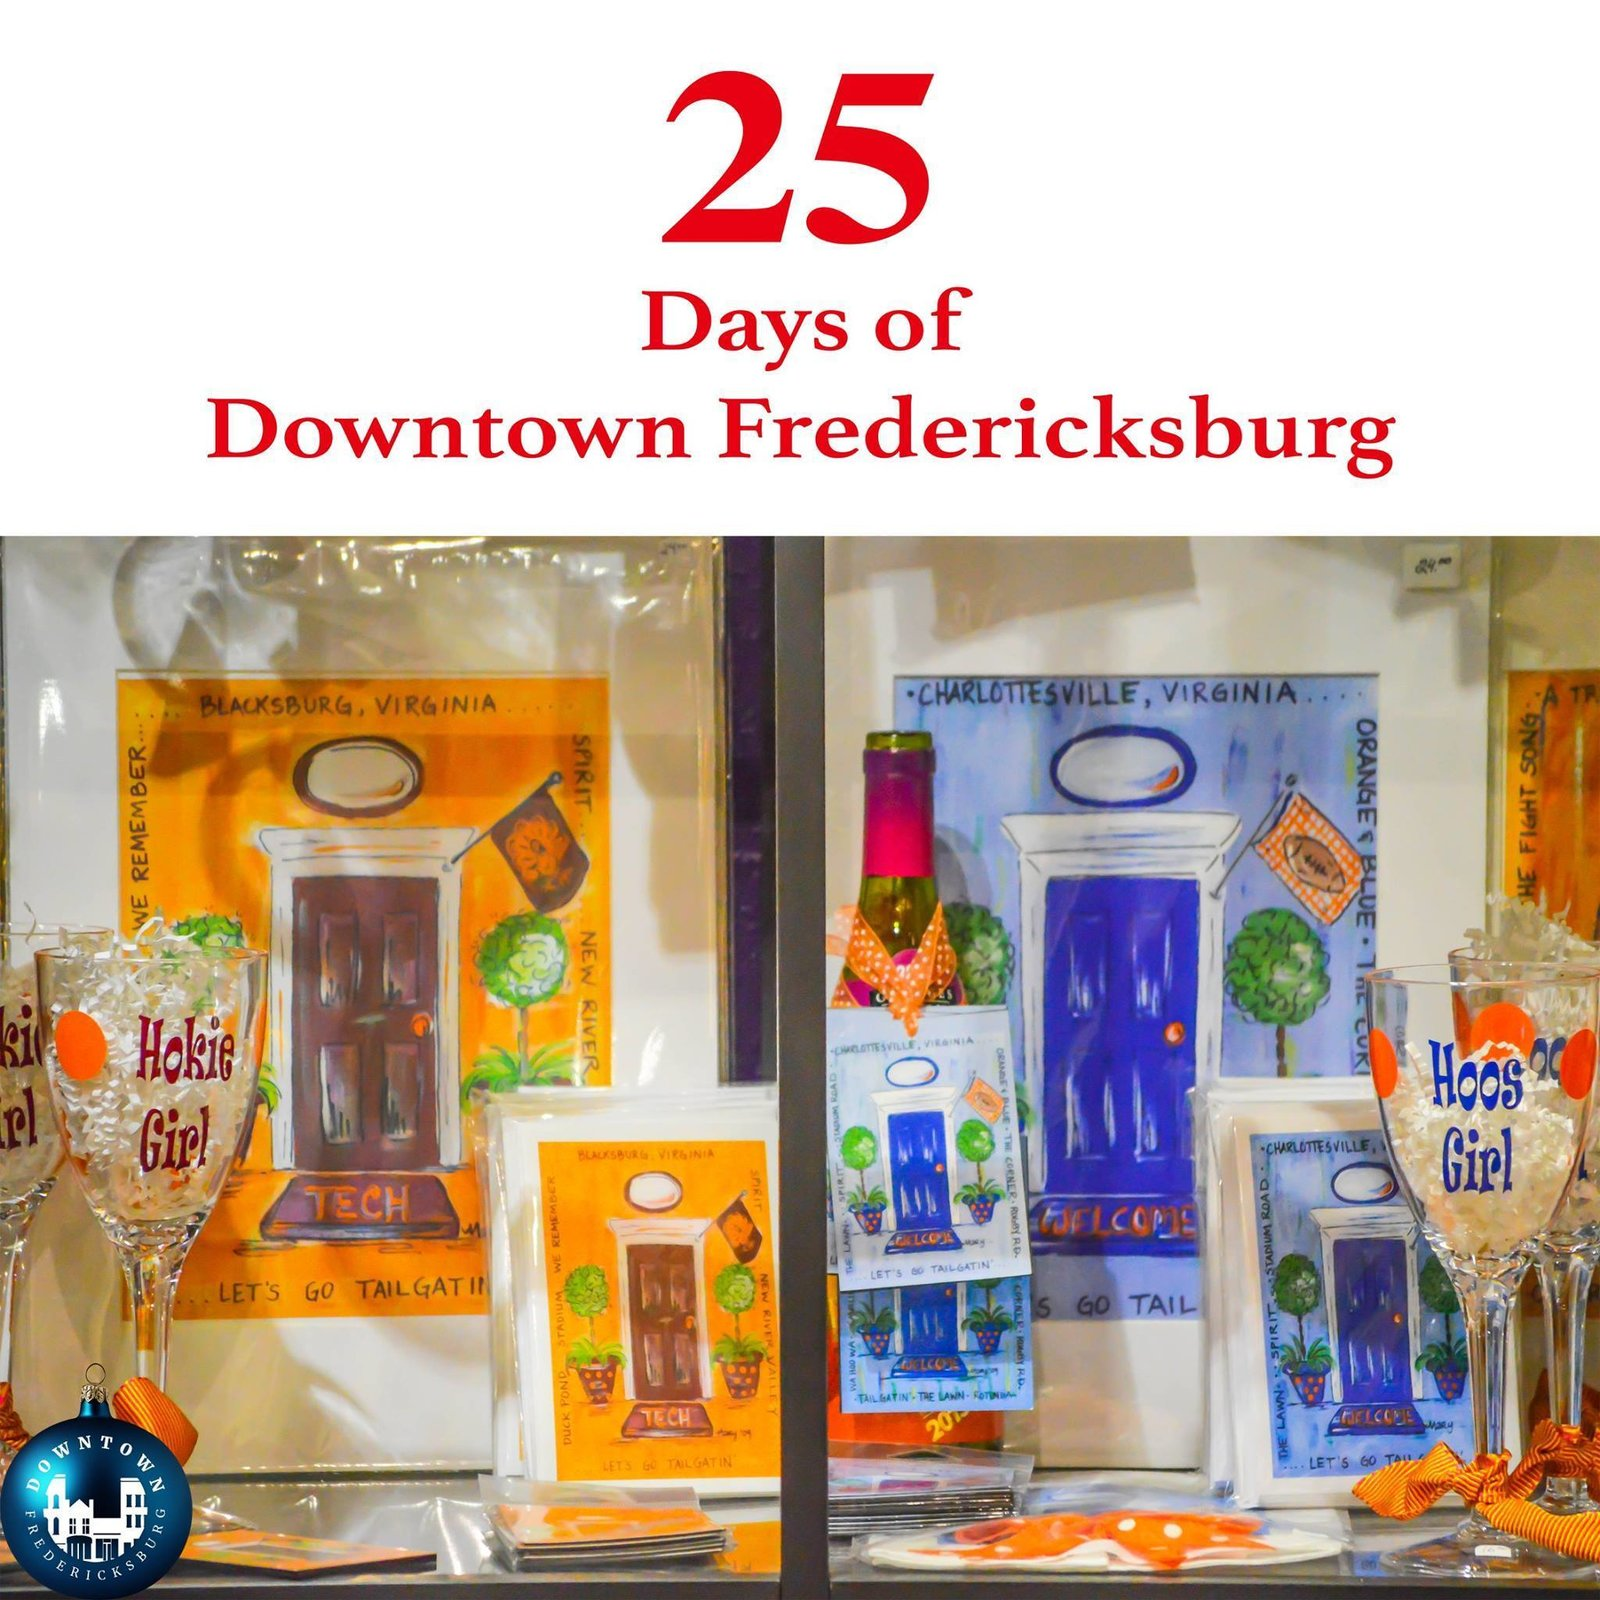 Gift Seventeen Whether you are a Hoo or a Hokie, Heather Boutique has the perfect collegiate gift for the fan in your home. https://www.facebook.com/DowntownFredericksburg/   25 Days of Downtown Fredericksburg by Downtown Fredericksburg